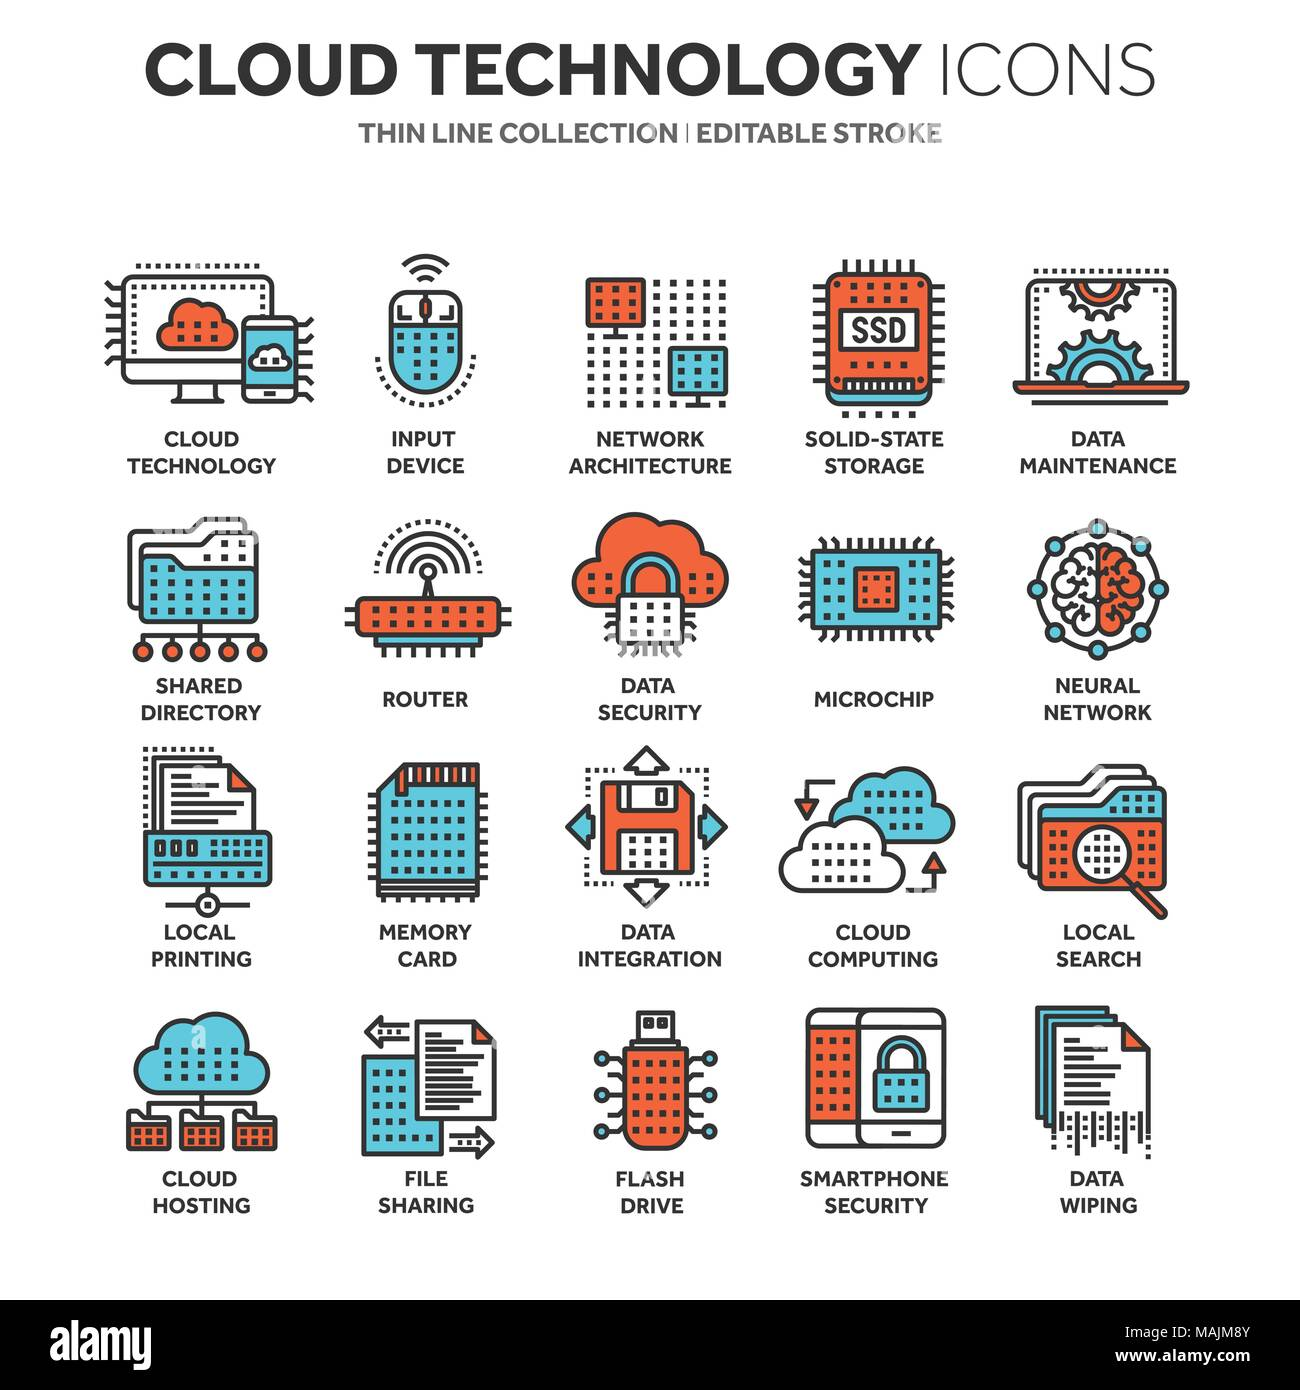 Cloud Computing Internet Technology Online Services Data Security Information Connection Thin Line Blue Web Icon Set Outline Icons Collectionvector Illustration